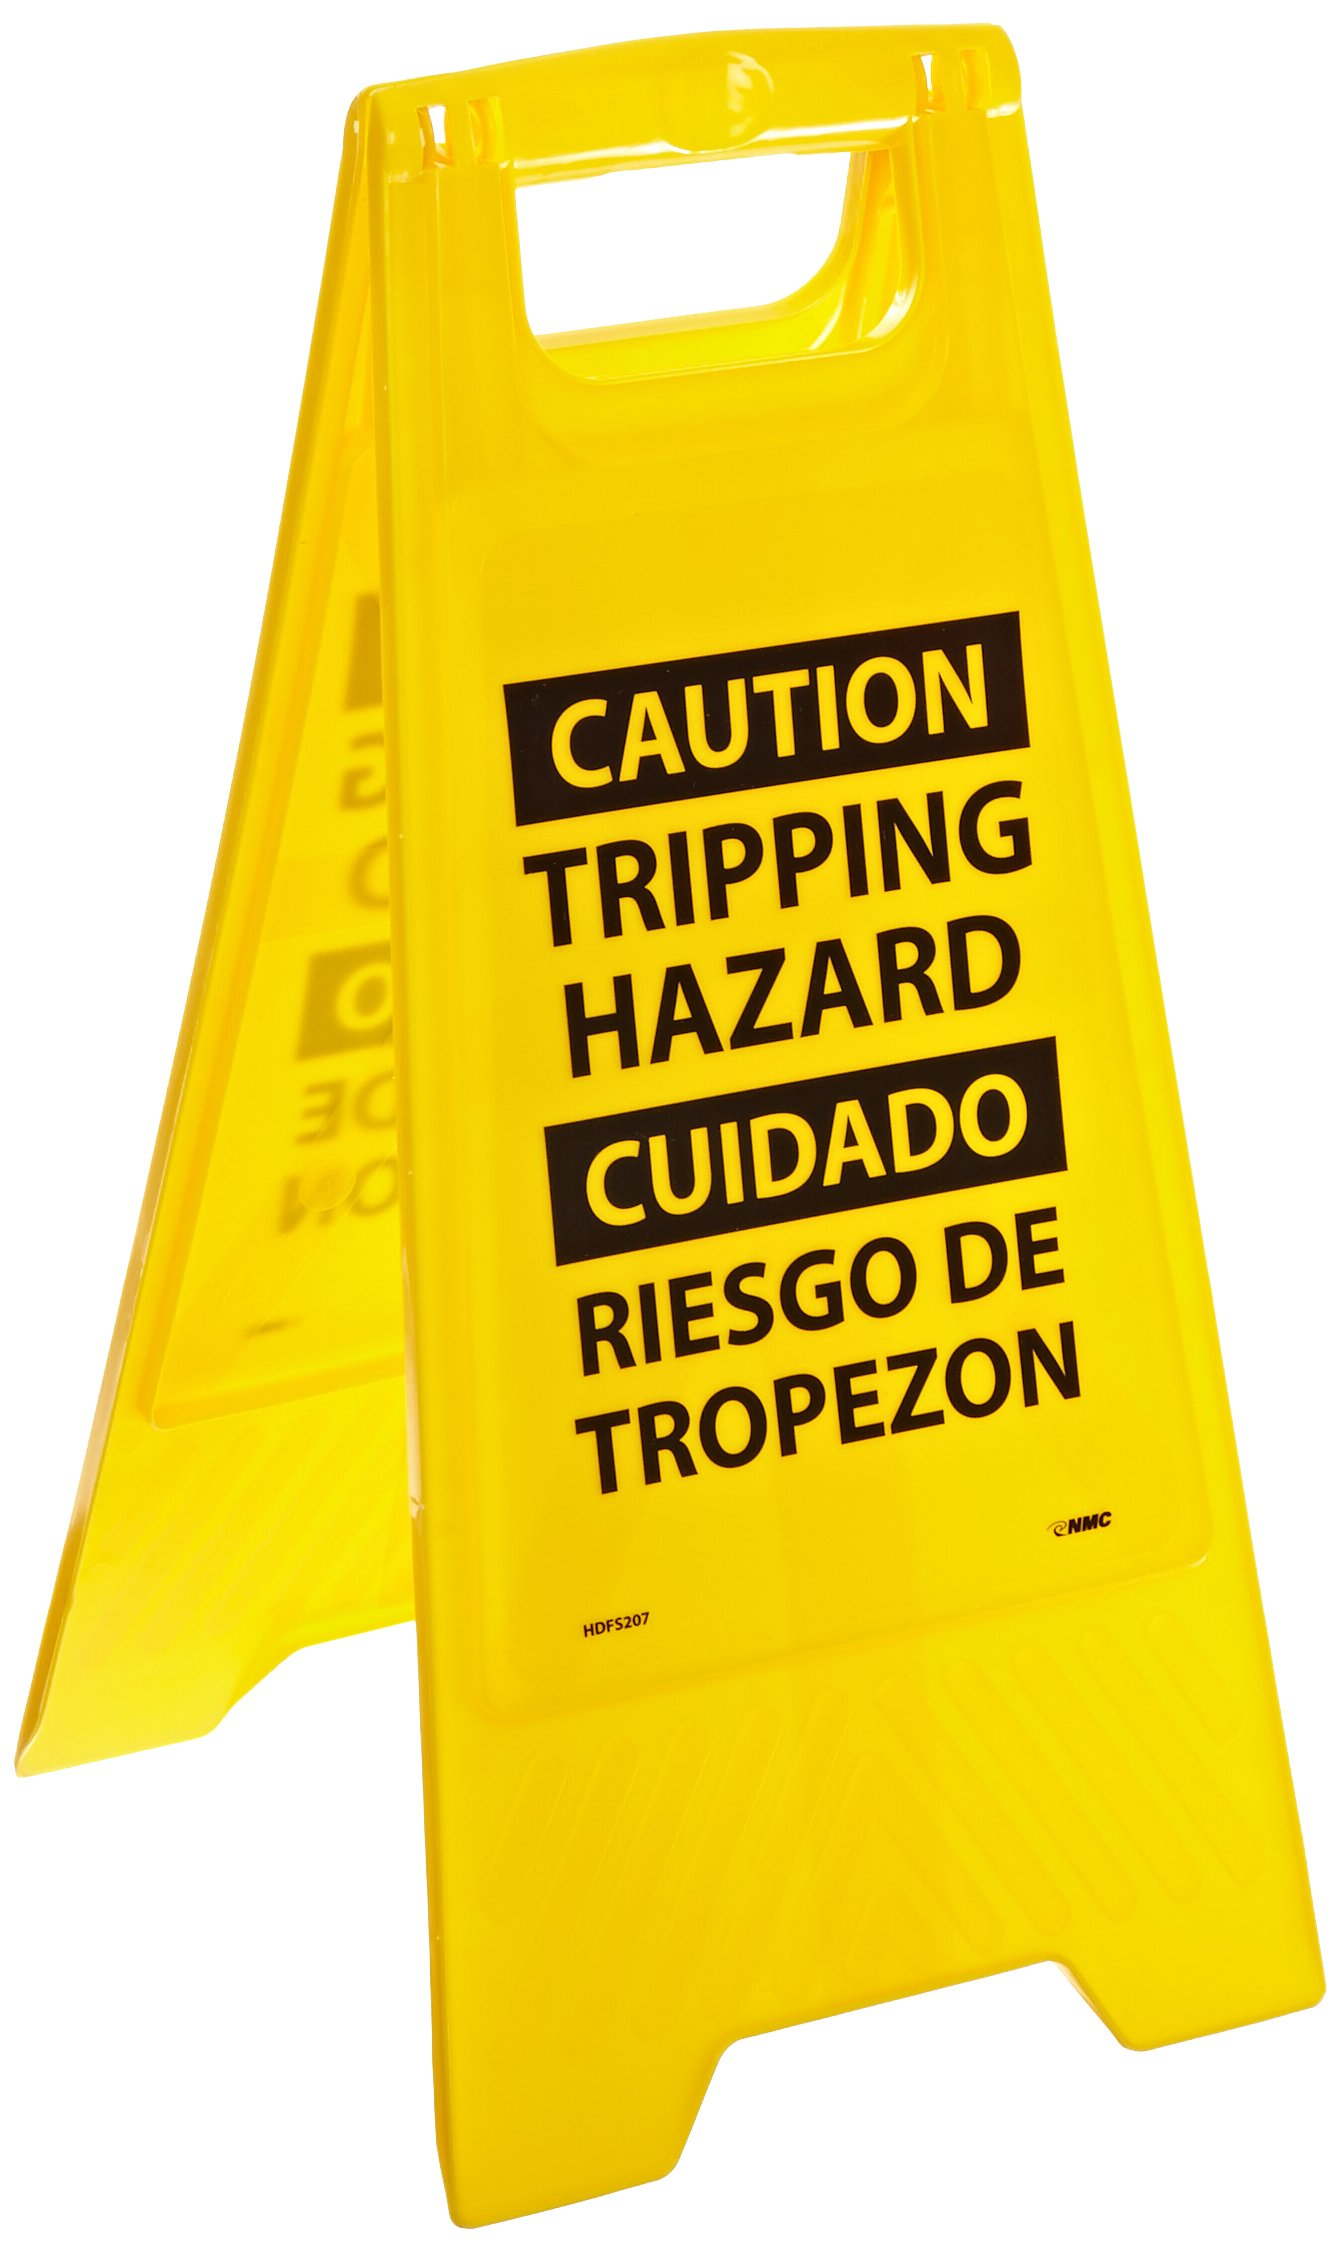 NMC HDFS207 Bilingual Heavy Duty Floor Stand Sign, Legend ''CAUTION TRIPPING HAZARD'', 10-3/4'' Length x 24-5/8'' Height, Black on Yellow